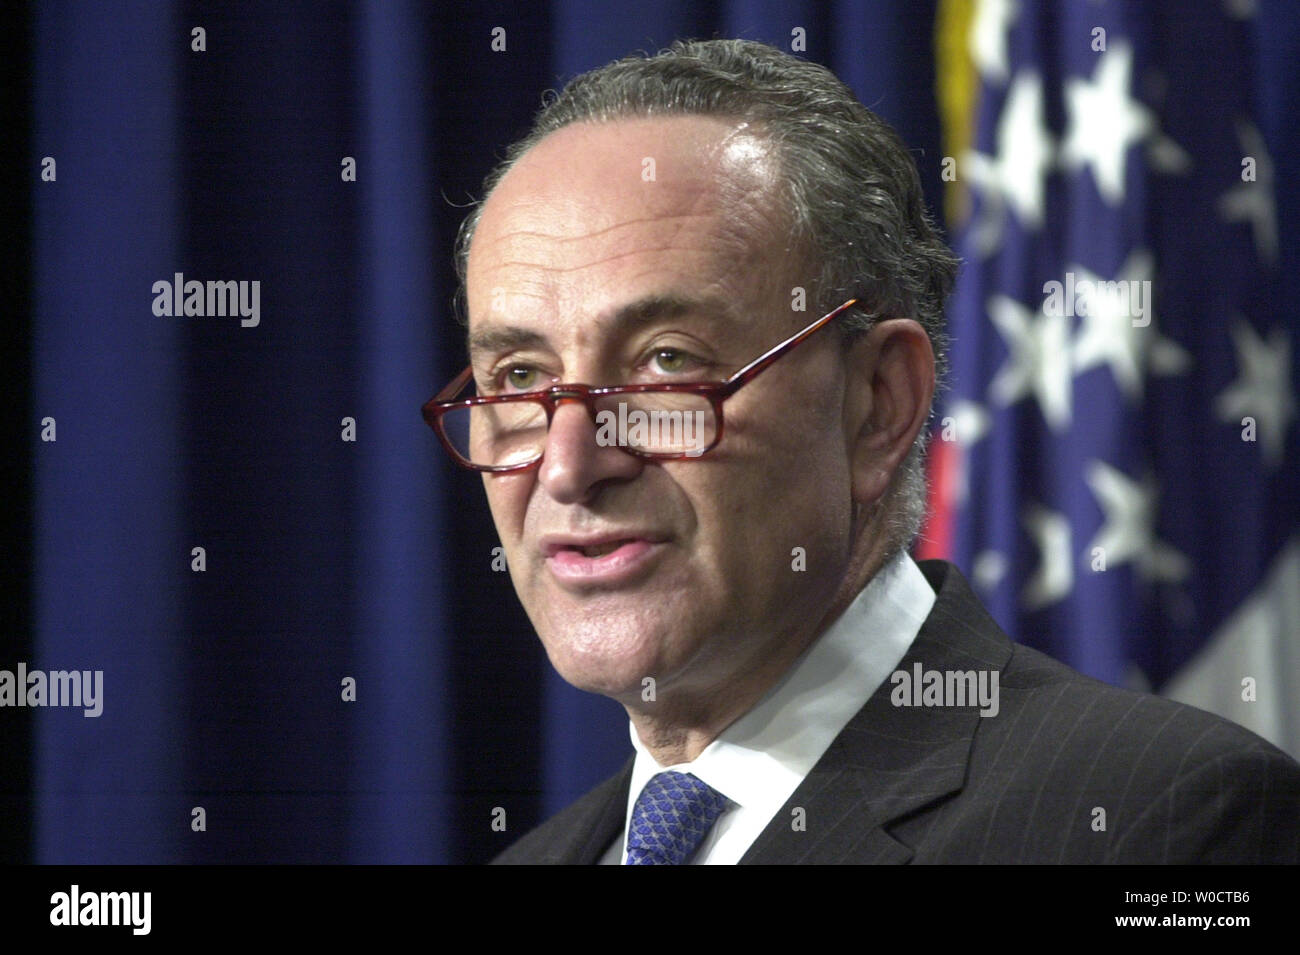 Sen. Charles Schumer (D-NY) gives his response to President Bush's Supreme Court Nominee Samuel Alito, saying that Bush has missed an opportunity to unify both parties with this choice in Washington on Oct. 31, 2005. (UPI Photo/Kevin Dietsch) - Stock Image